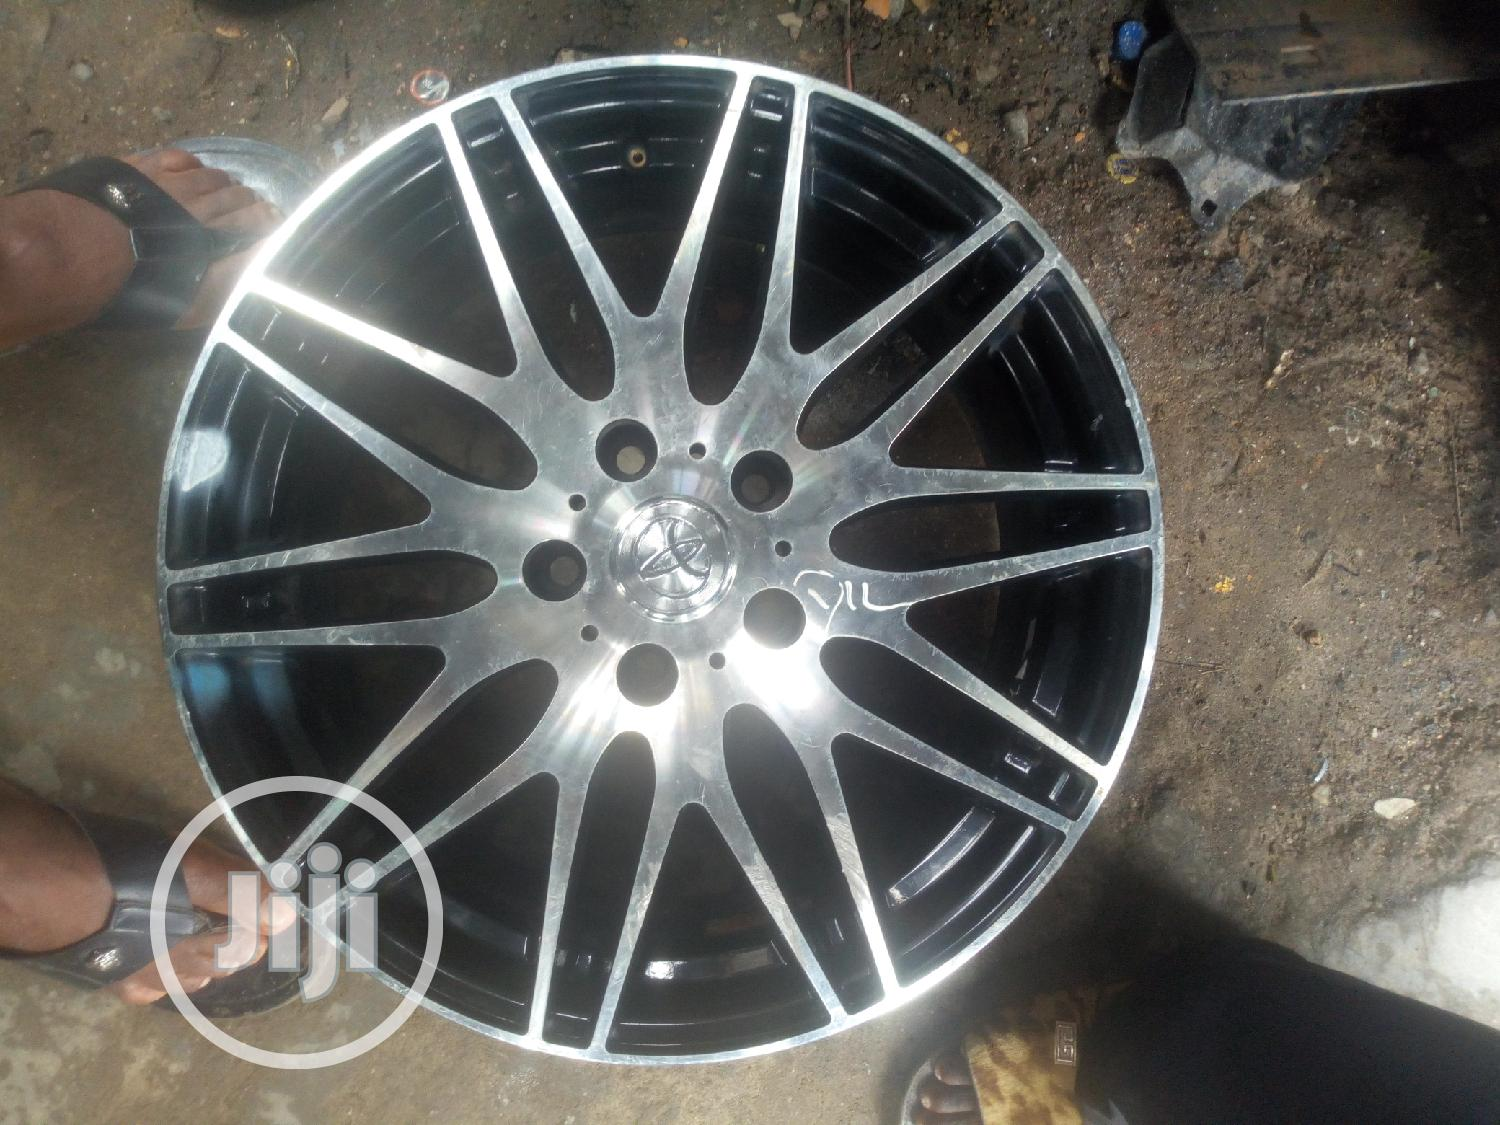 Archive: Alloy Rim Black And Stenless 17 Inches